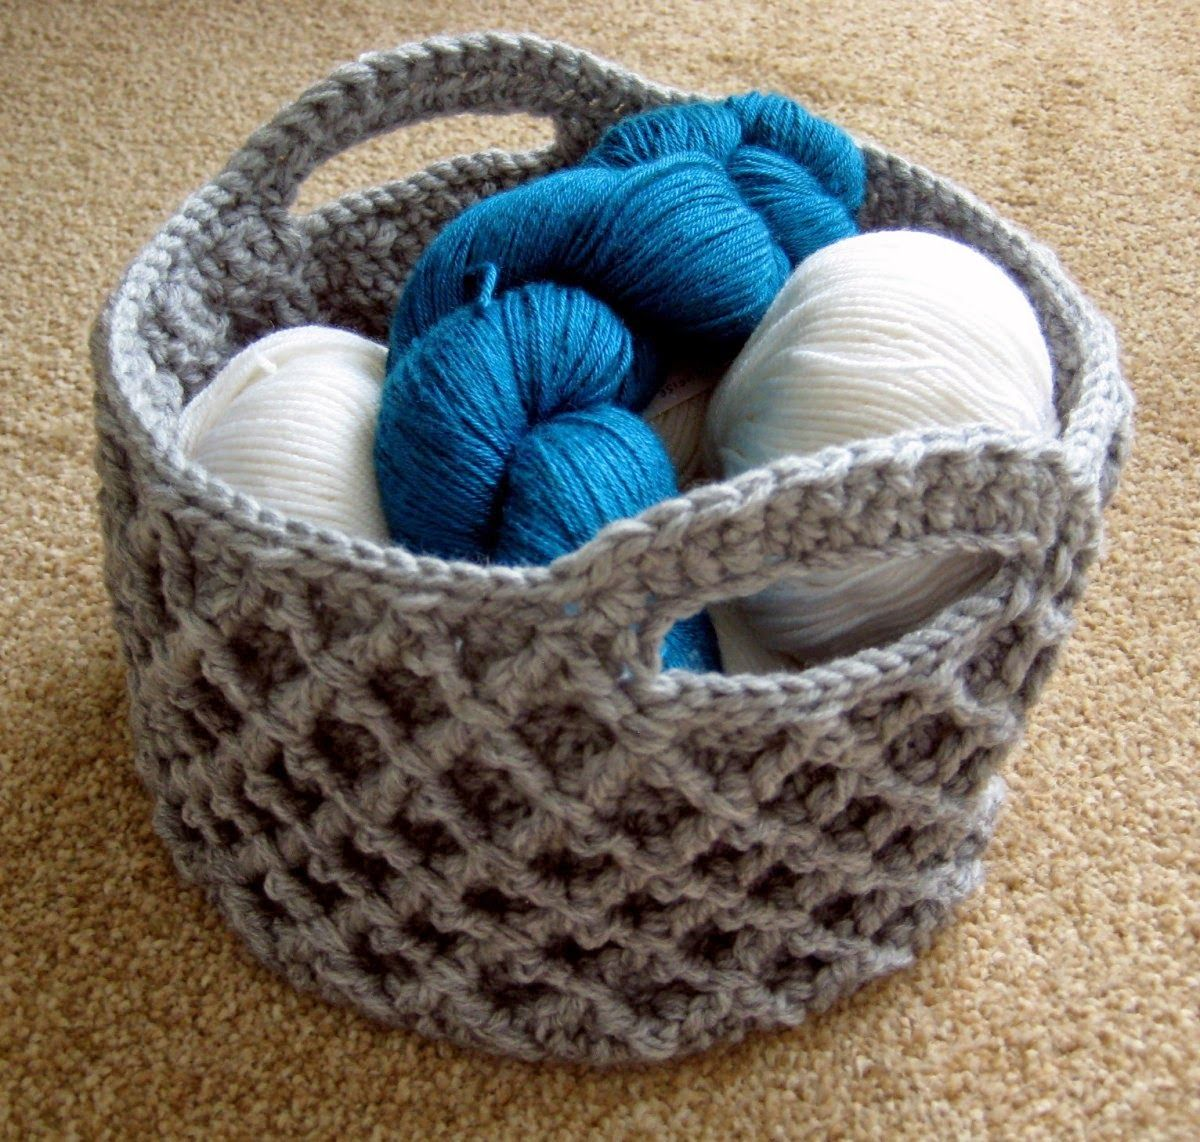 Crochet Diamond Trellis Basket by: Make My day Creative